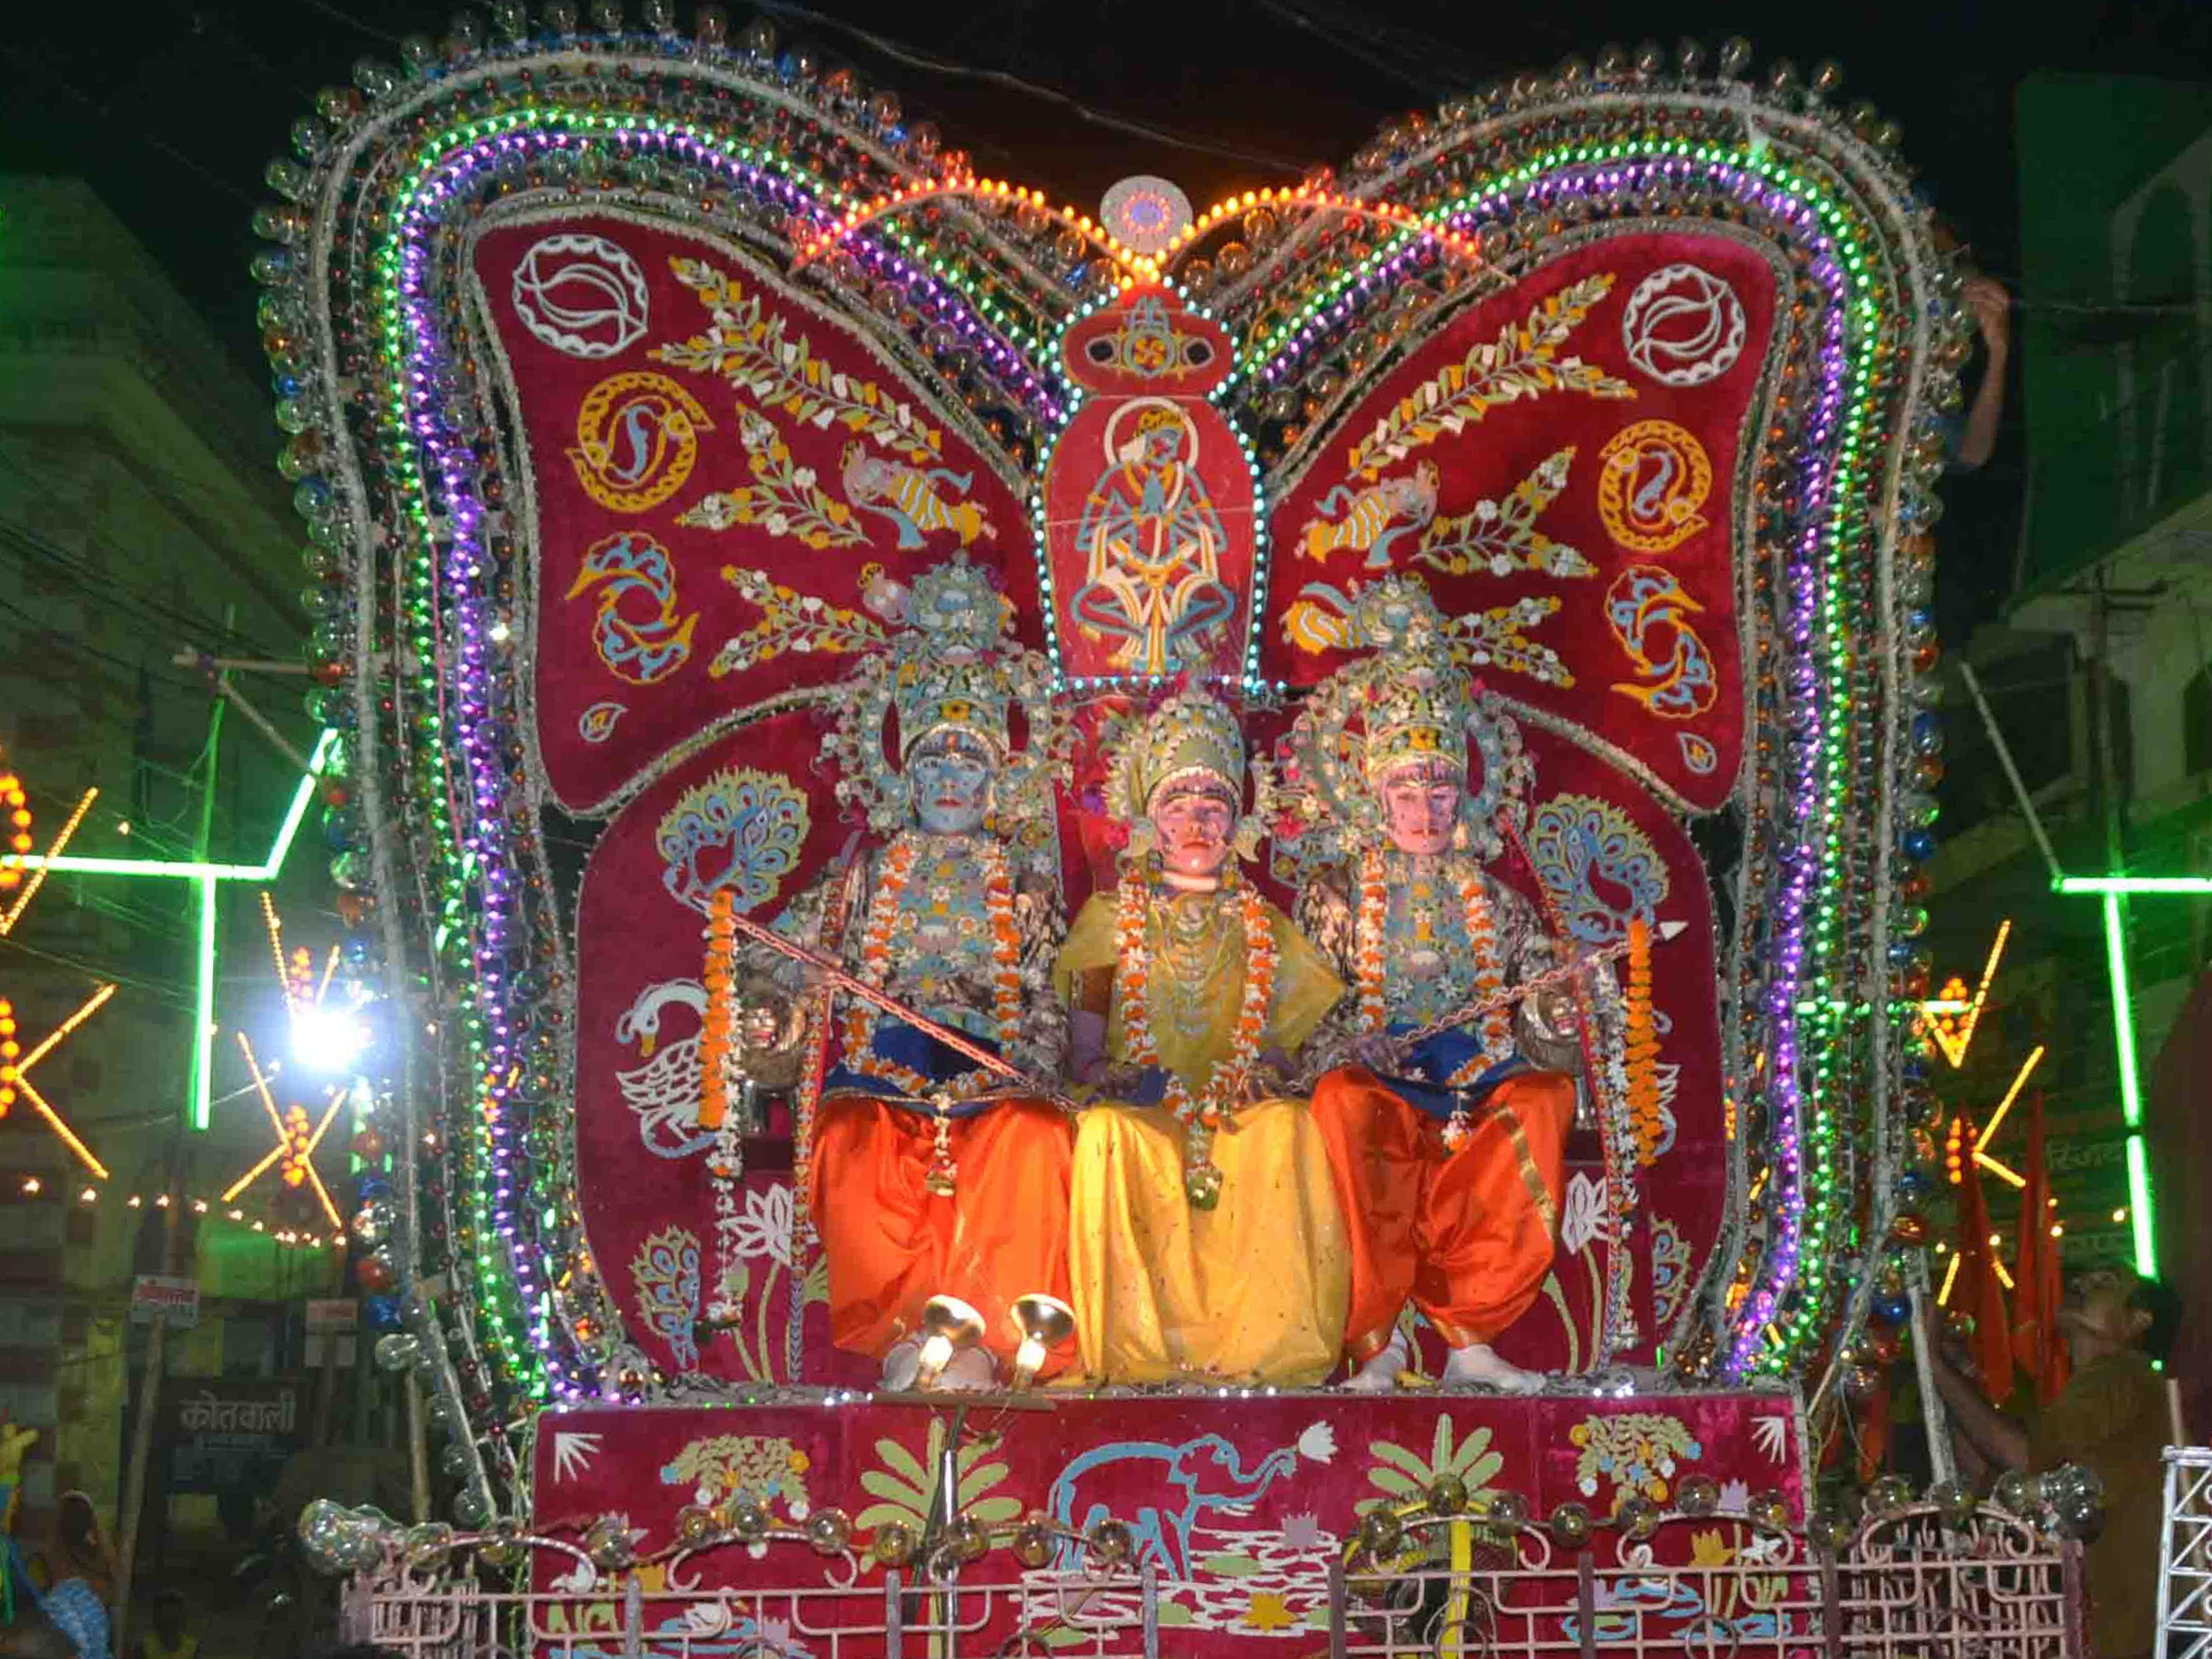 The History and Origin of the Durga Puja Festival